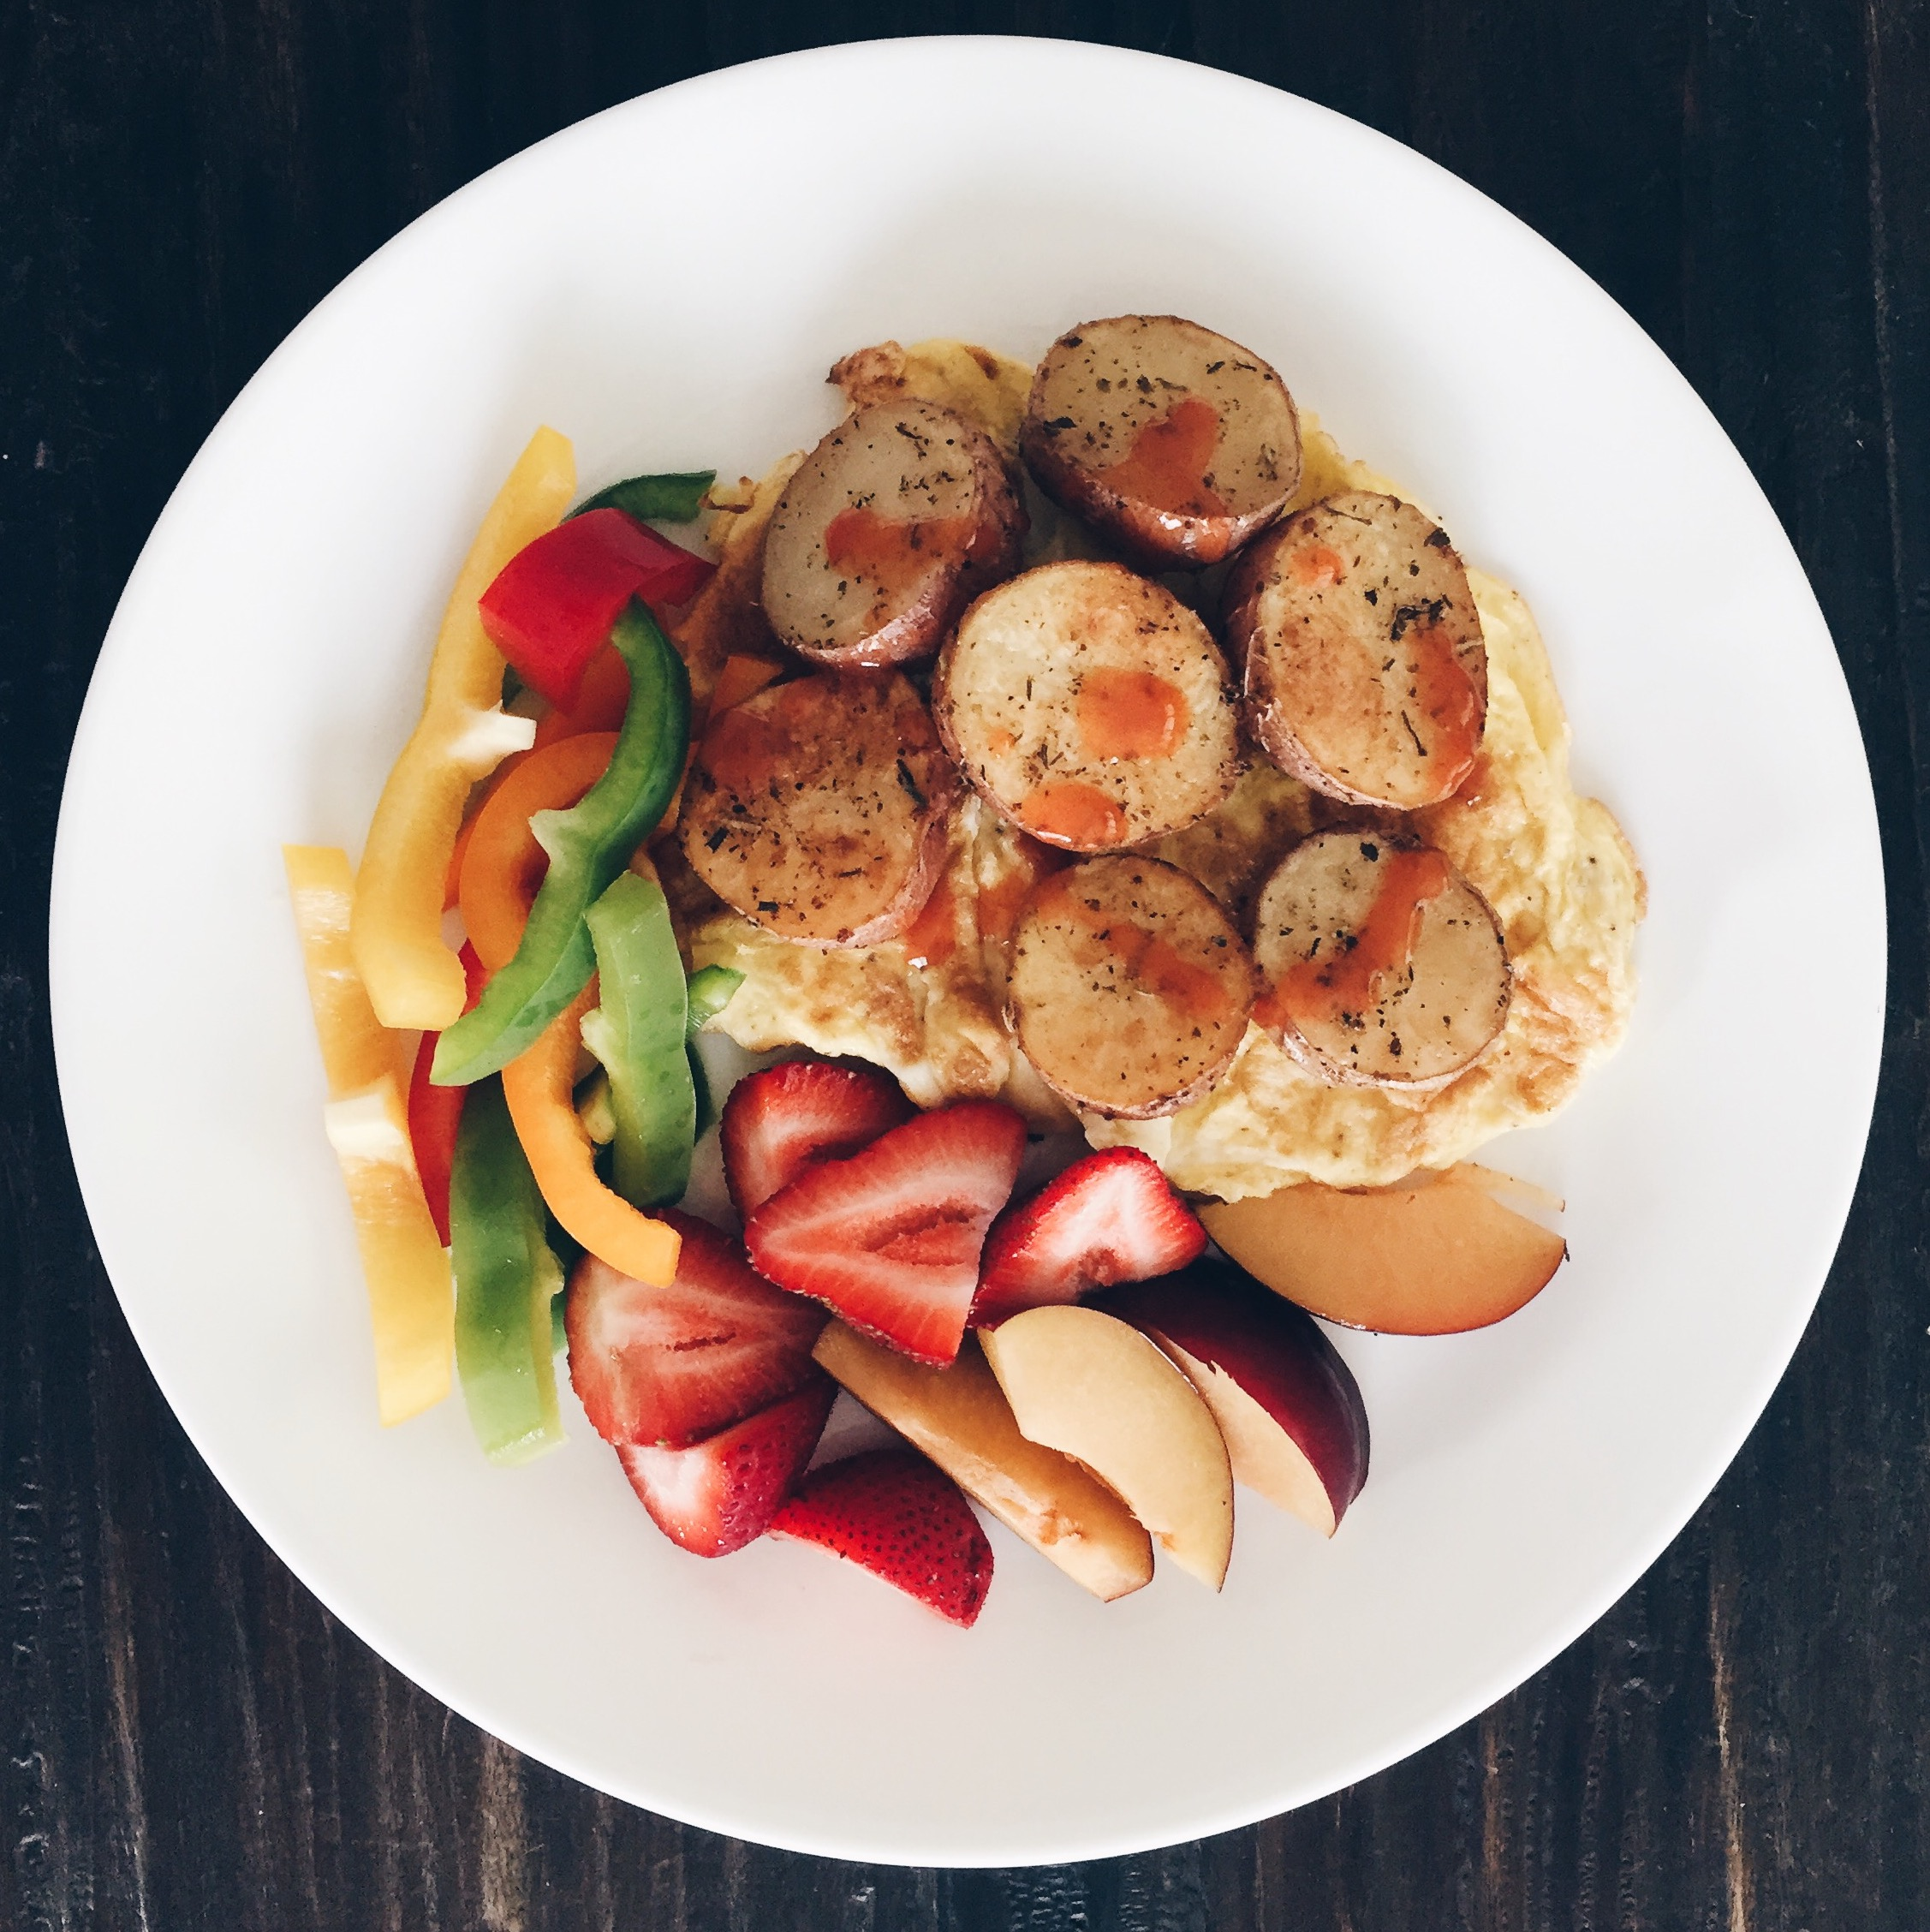 This is my very easy scrambled eggs with roasted potatoes, fruit, and veggies.